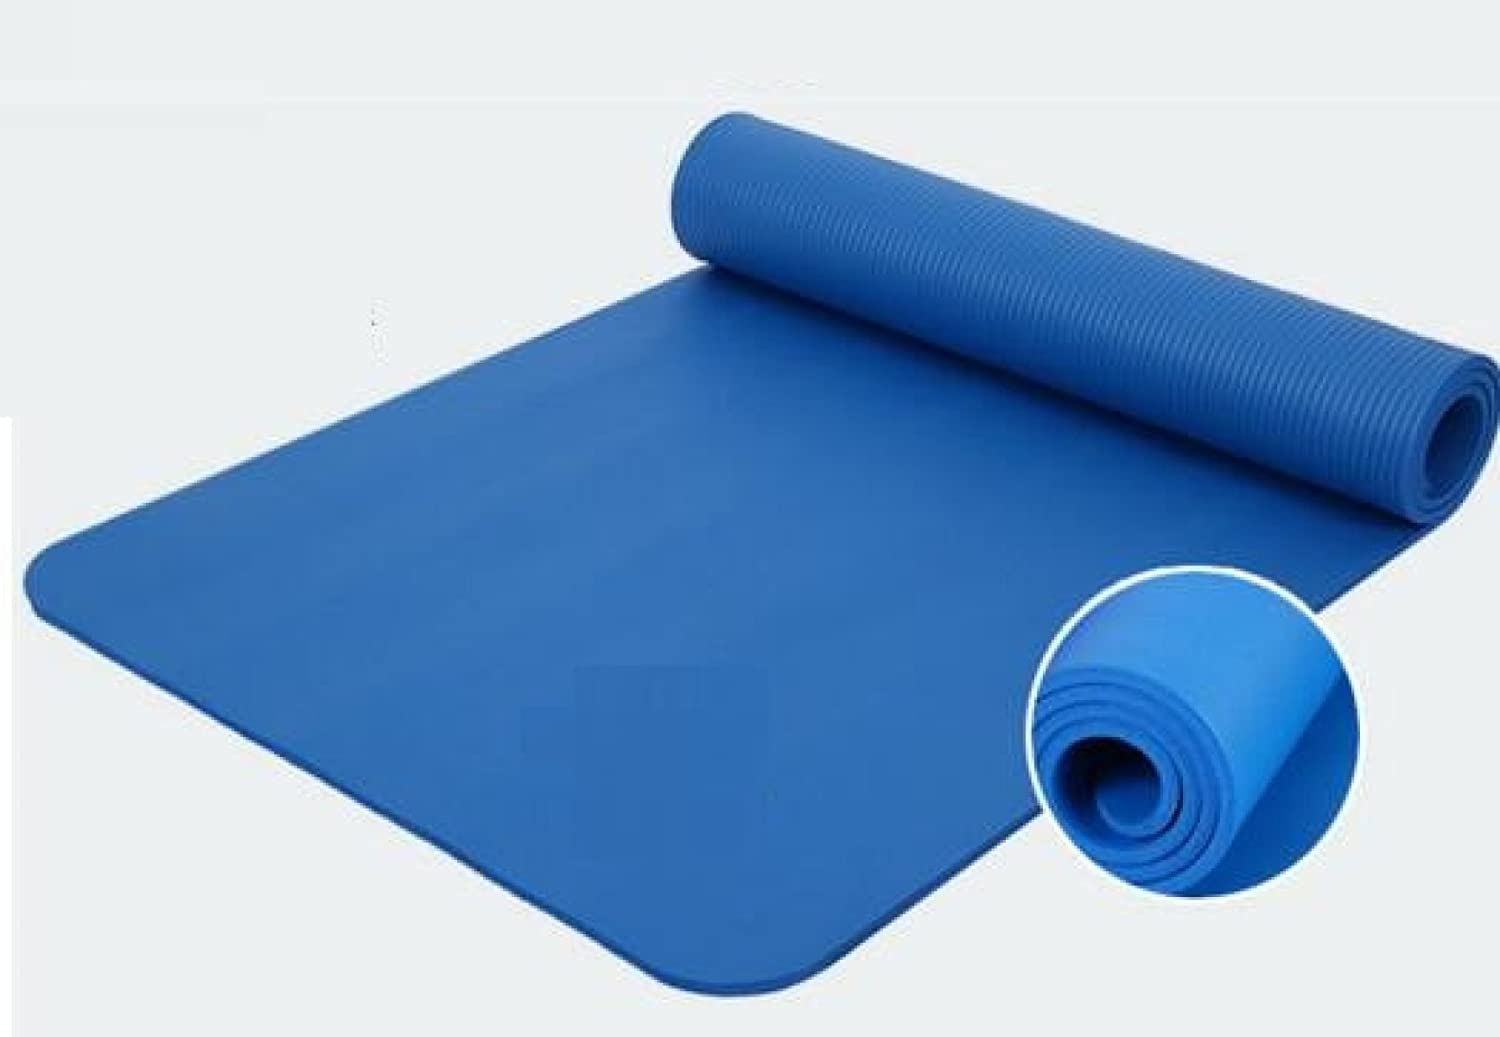 ZHANGHAOBO Fitness Yoga Praxis Set Yoga Mat Supine Puller Zweiteilige Yoga Aids Straps,A2